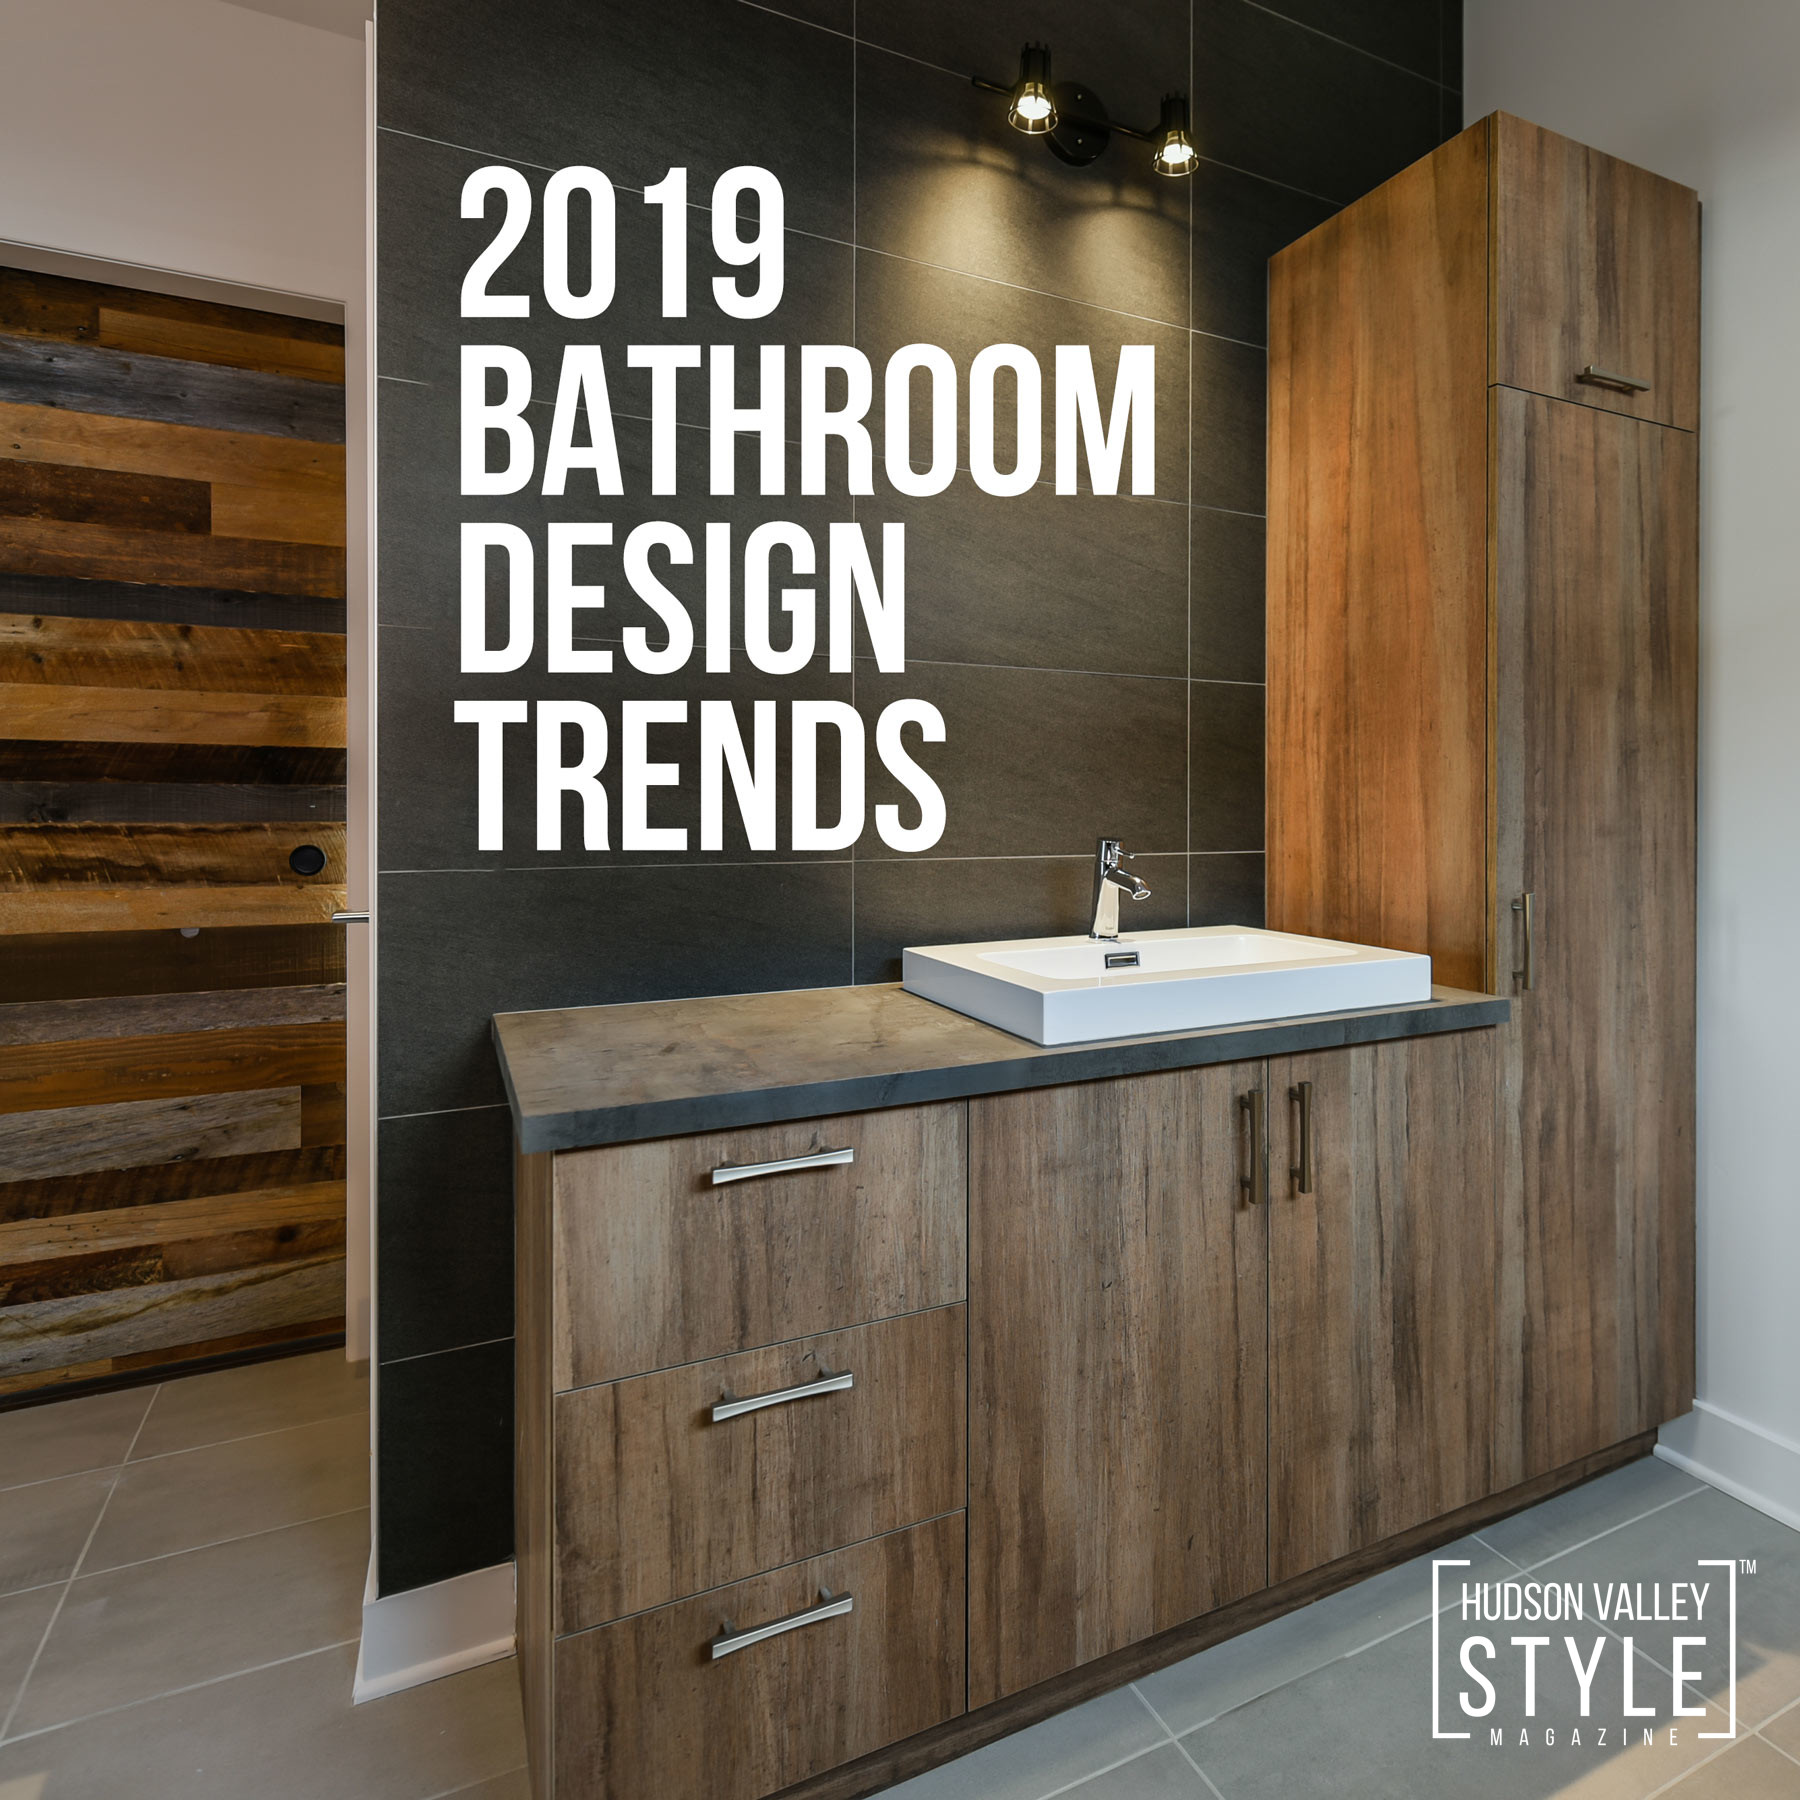 Bathroom Design Trends 2019: 2019 Bathroom Design Trends